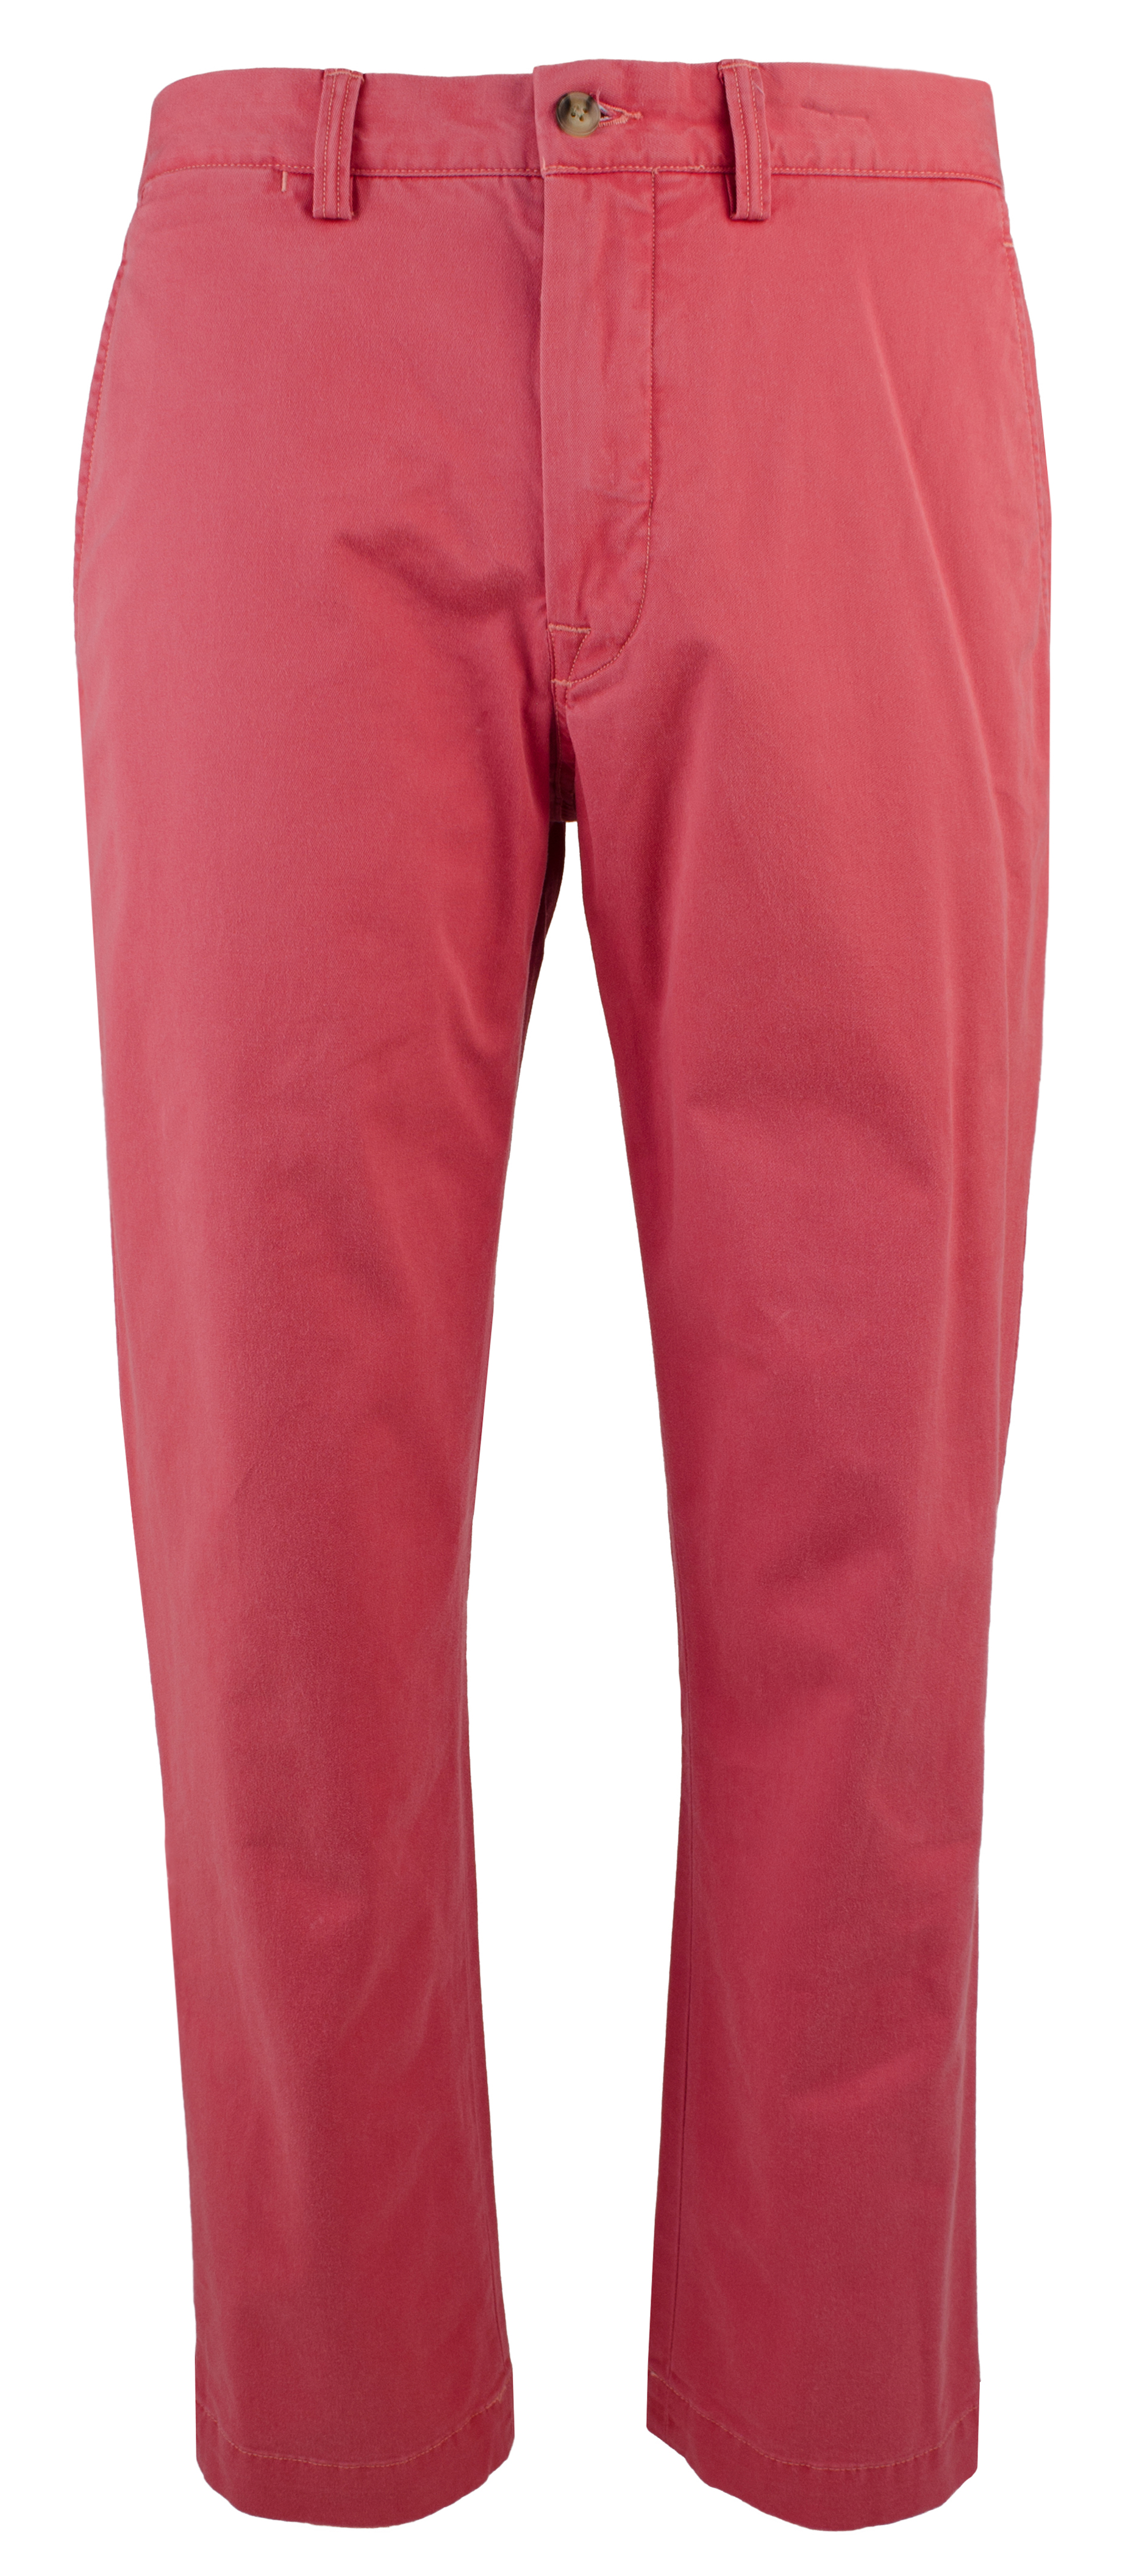 Polo Ralph Lauren Men/'s Stretch Straight Fit Flat Front Chino Pants Pink